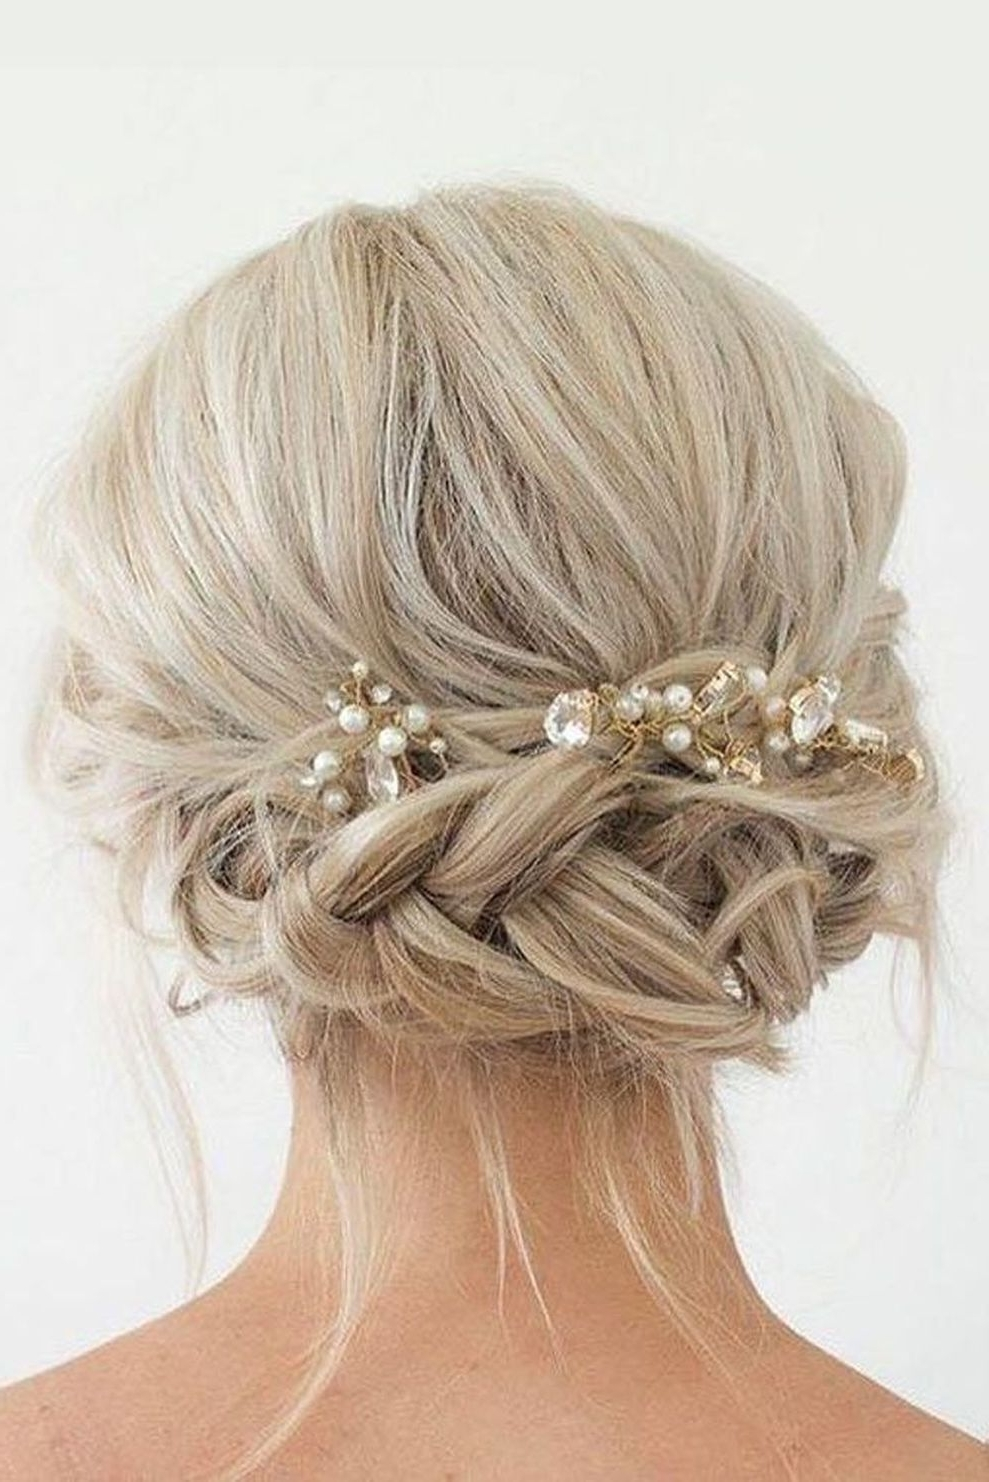 44 Beautiful Wedding Hairstyles Ideas For Medium Length Hair With Regard To Most Popular Wedding Hairstyles For Chin Length Hair (View 14 of 15)